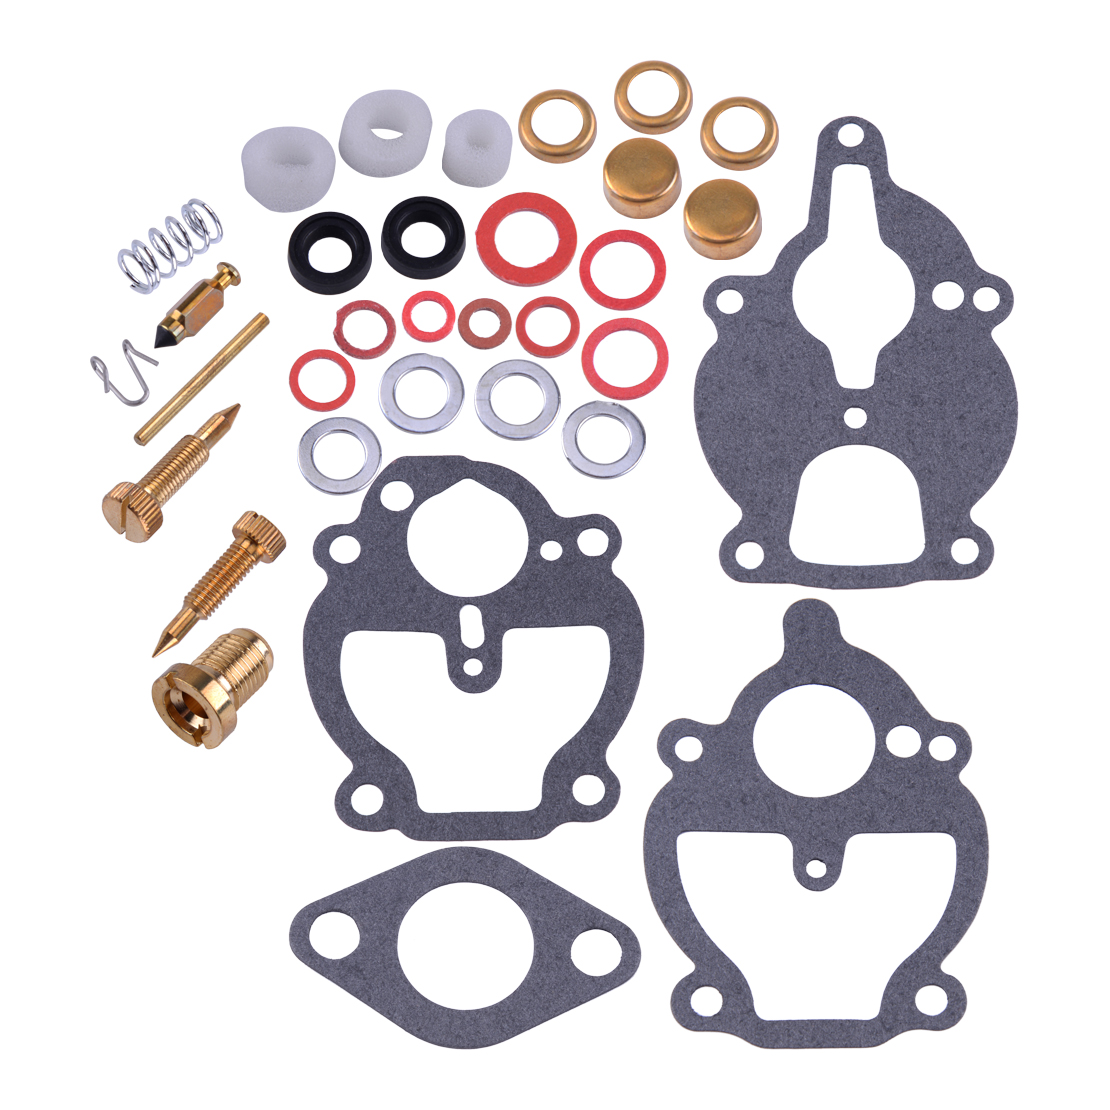 267 W//Float 68 161 61 Z-1 Industrial /& Agricultural Carb Kit ZENITH 67 62